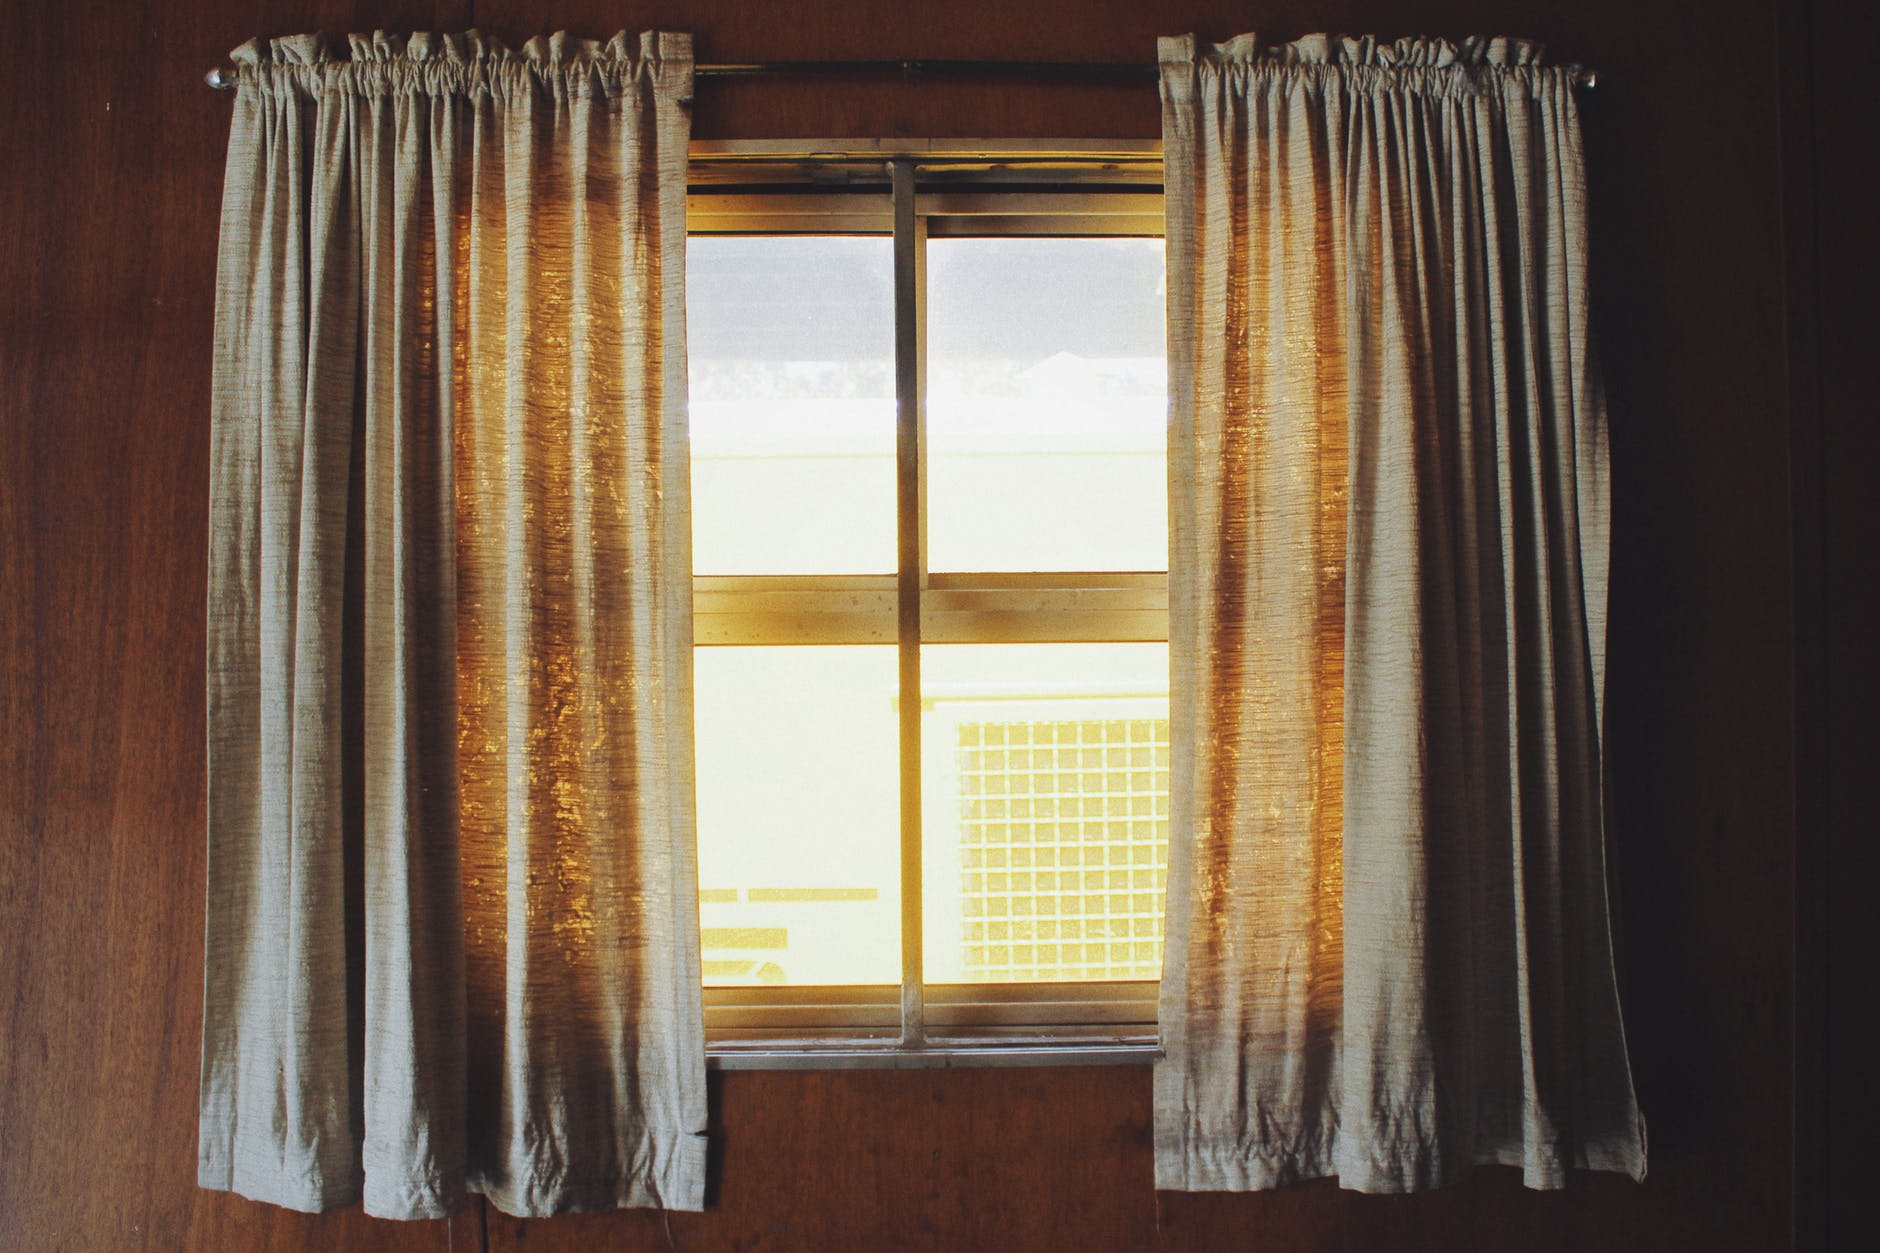 Bring in the Natural Light - There's no excuses not to take this tip- anyone with a window can do it! Simply opening the windows during the day will flood your home with natural light and a cool breeze. If you don't want to open a window, simply just open the shutters or the curtains for the same effect.